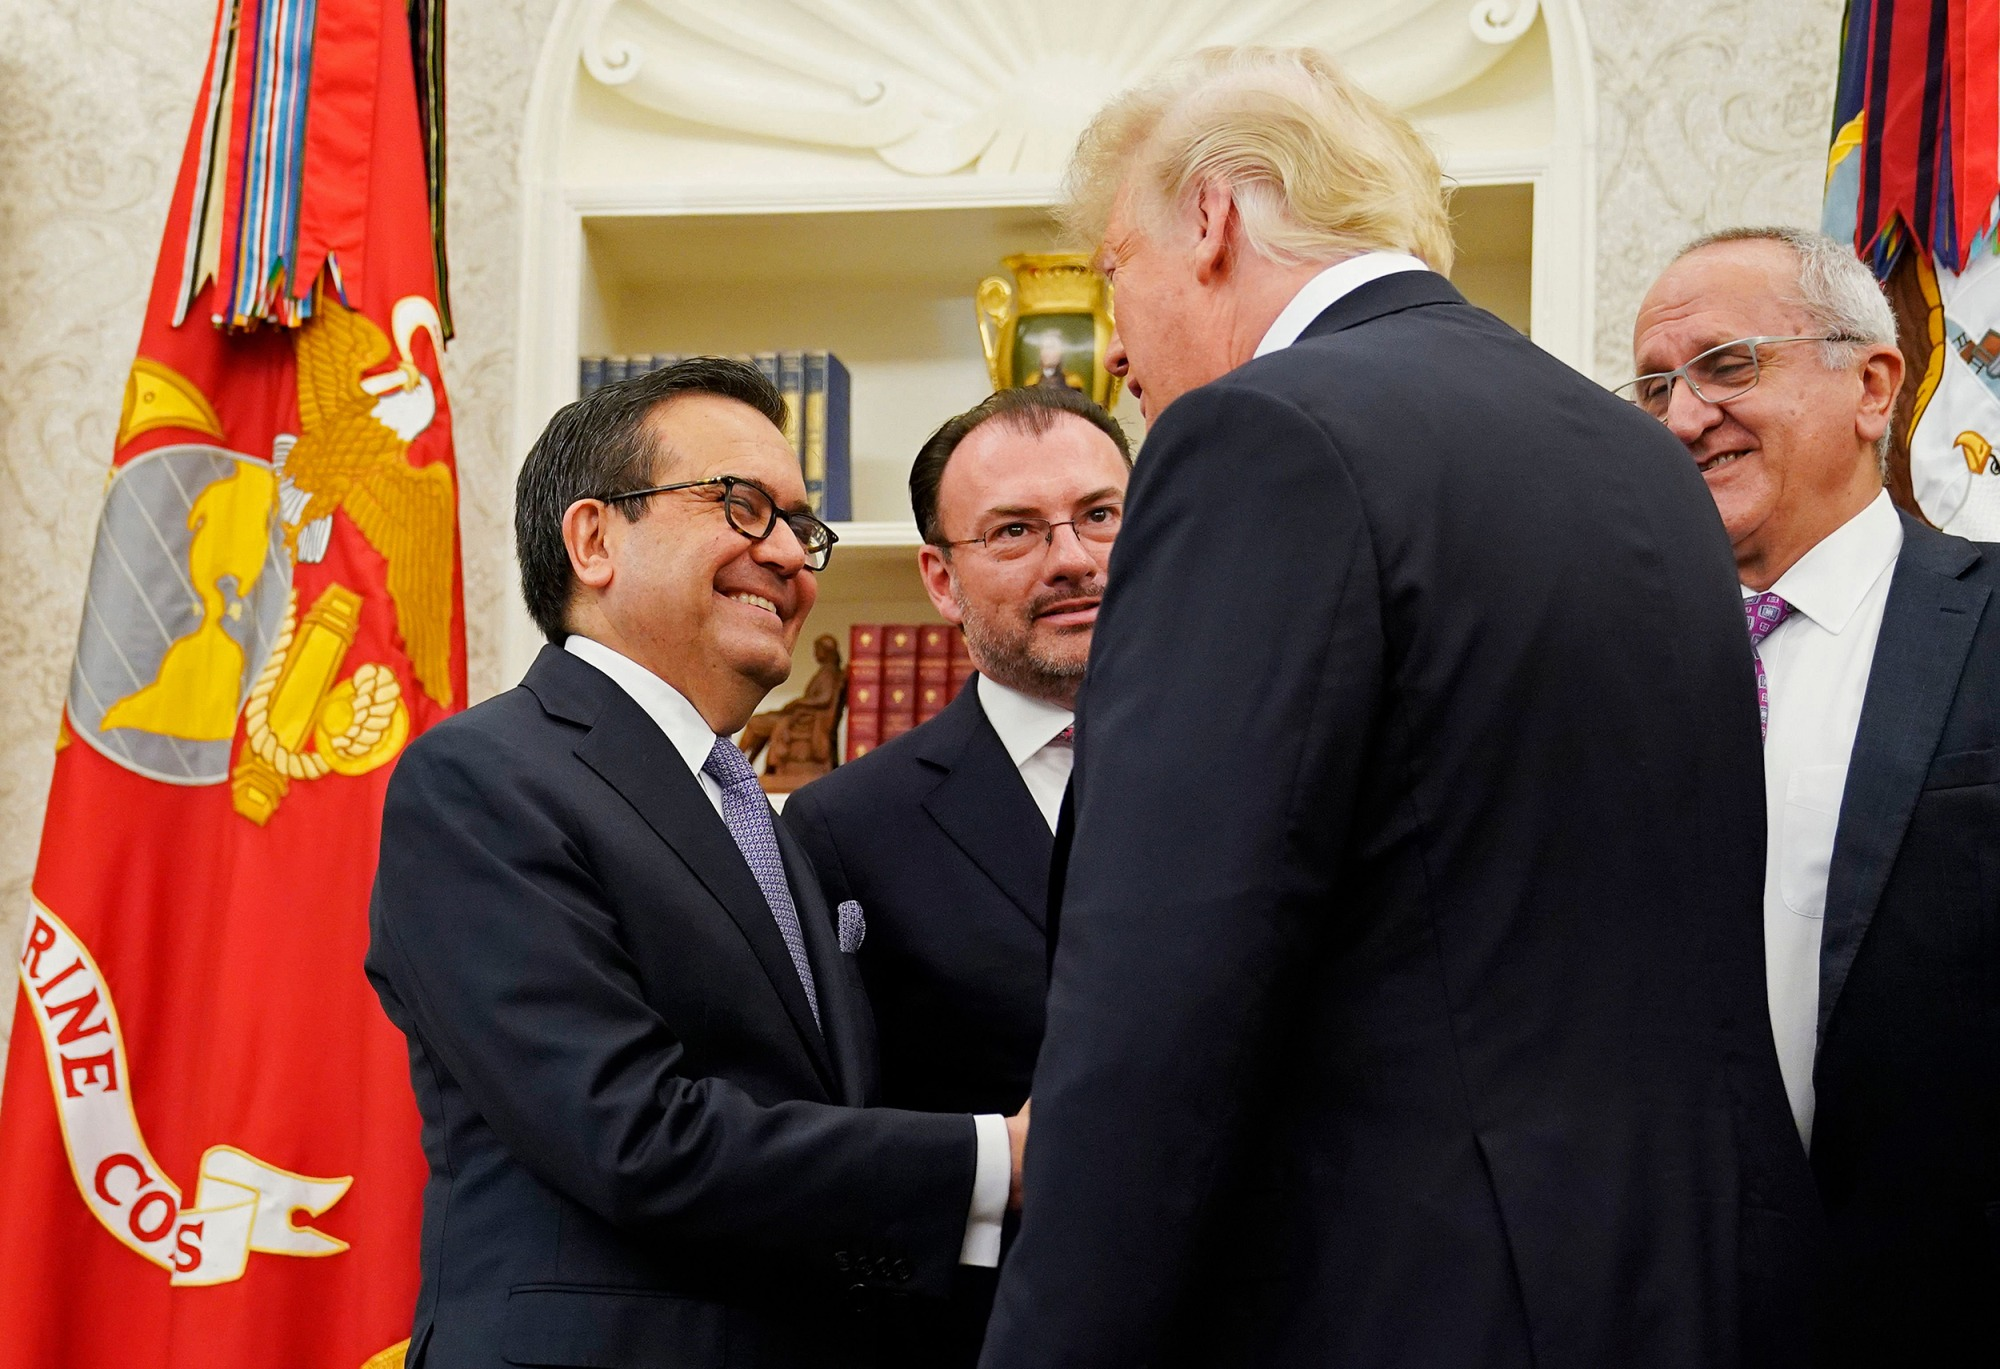 Image: U.S. President Donald Trump shake hands with Mexico's Economy Minister Ildefonso Guajardo Villarreal